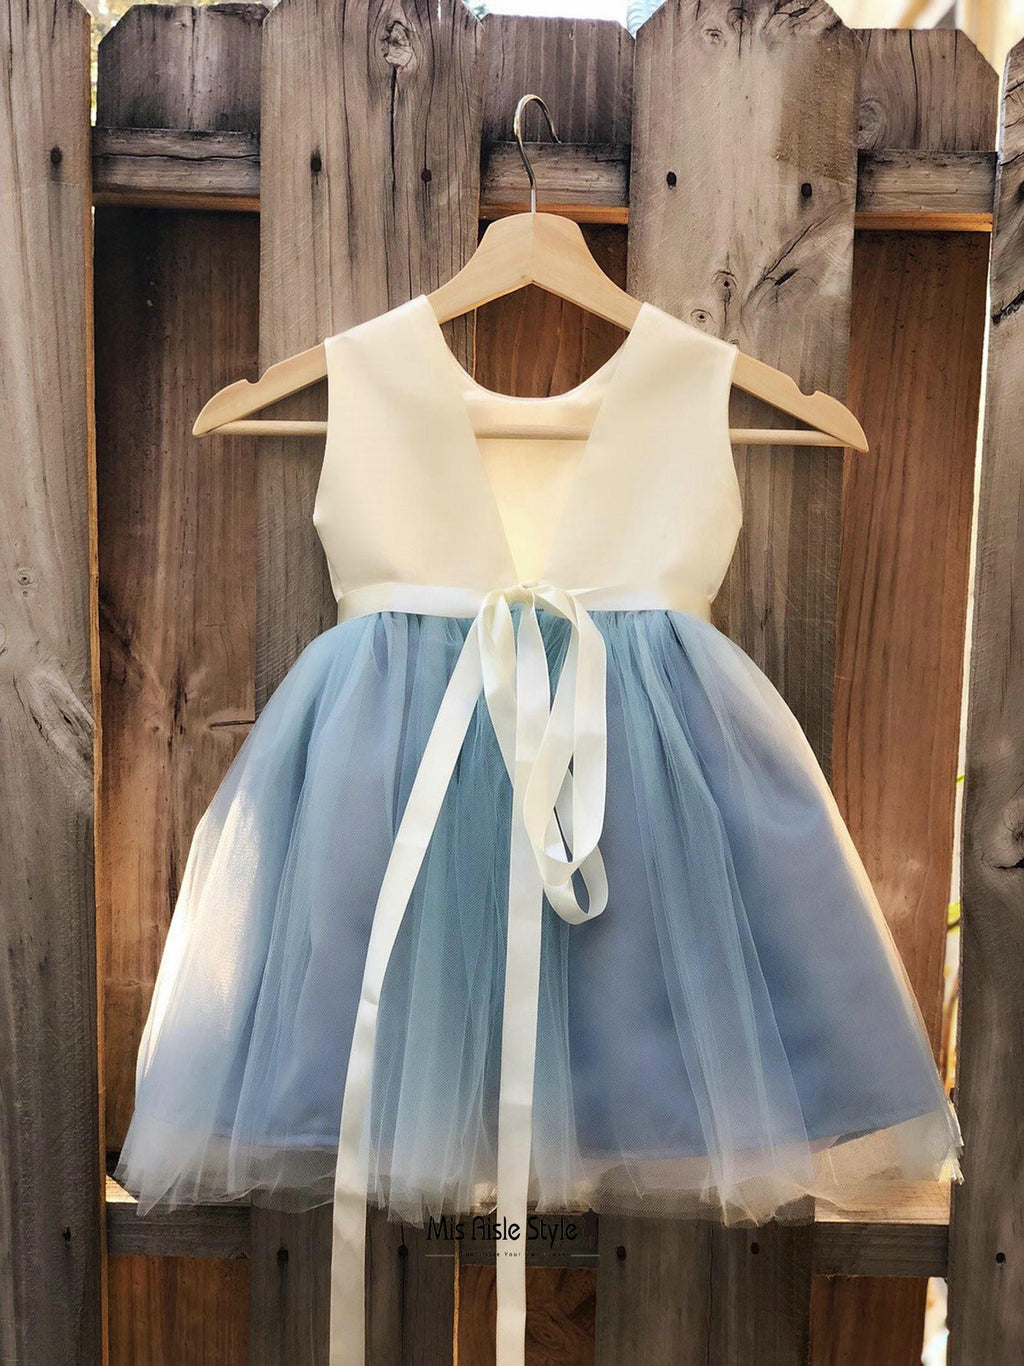 v-back flower girl dress